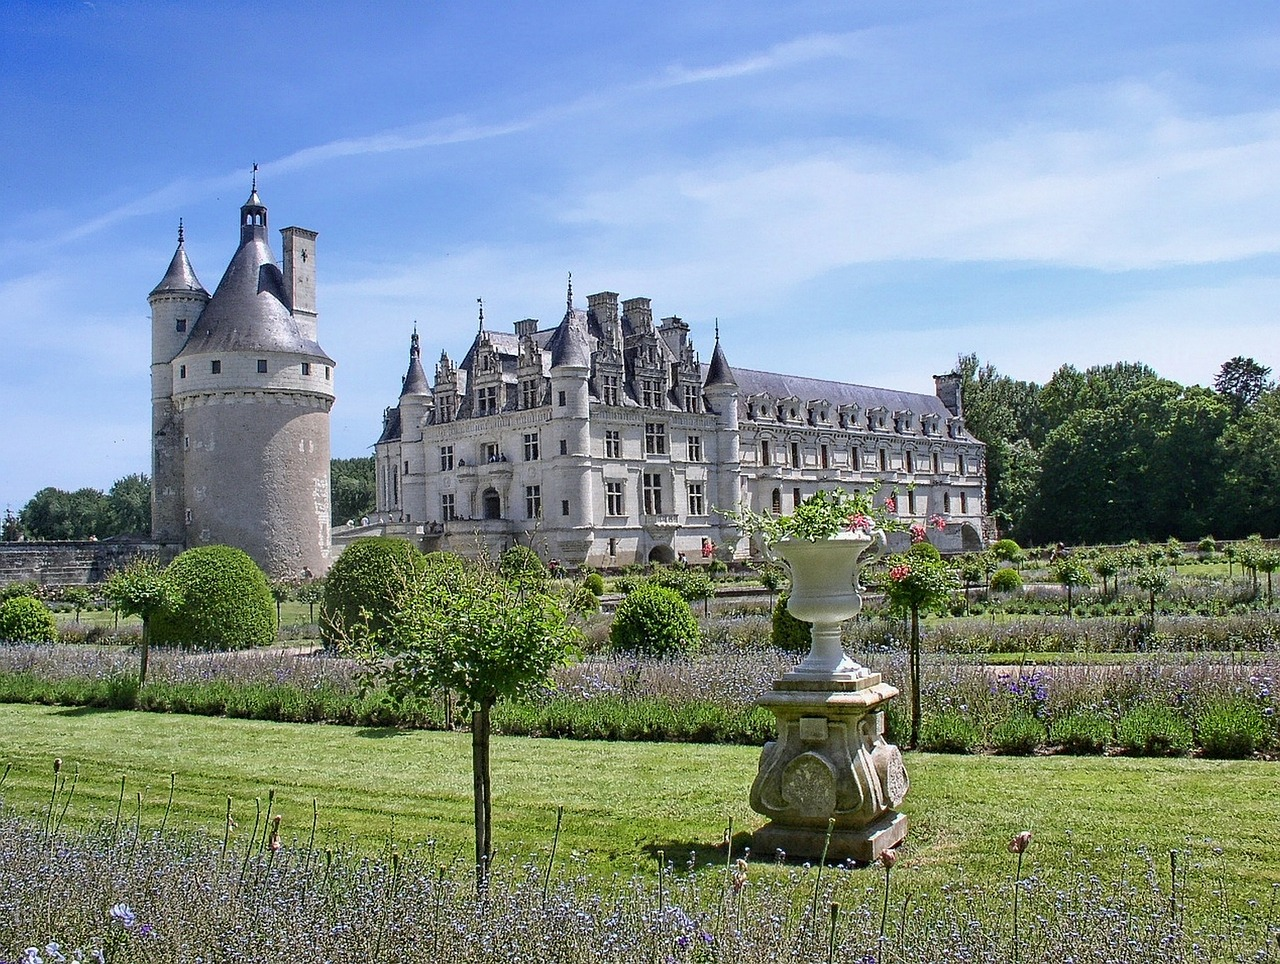 Getting from Paris to the Loire Valley